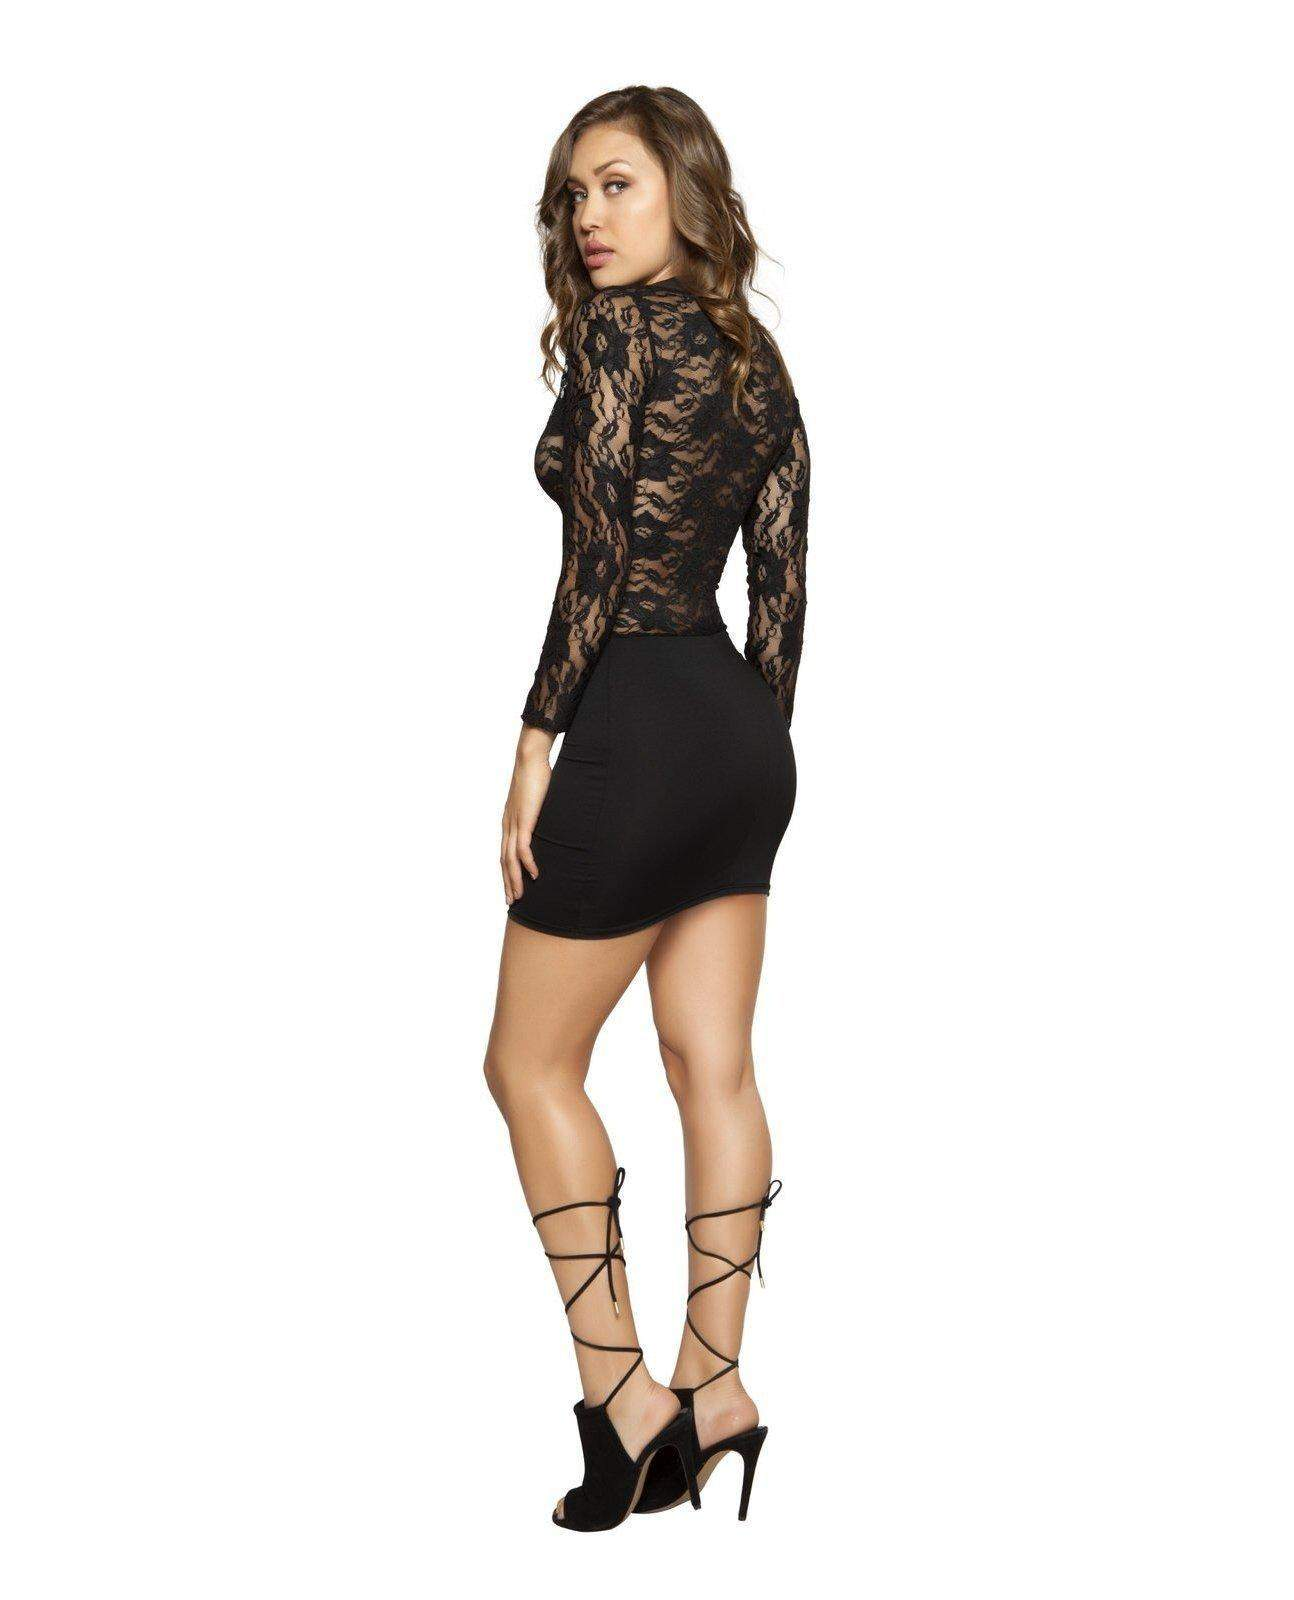 Long Sleeved Lace Dress with Zipper Closure club wear Size smallcolor blackNakees